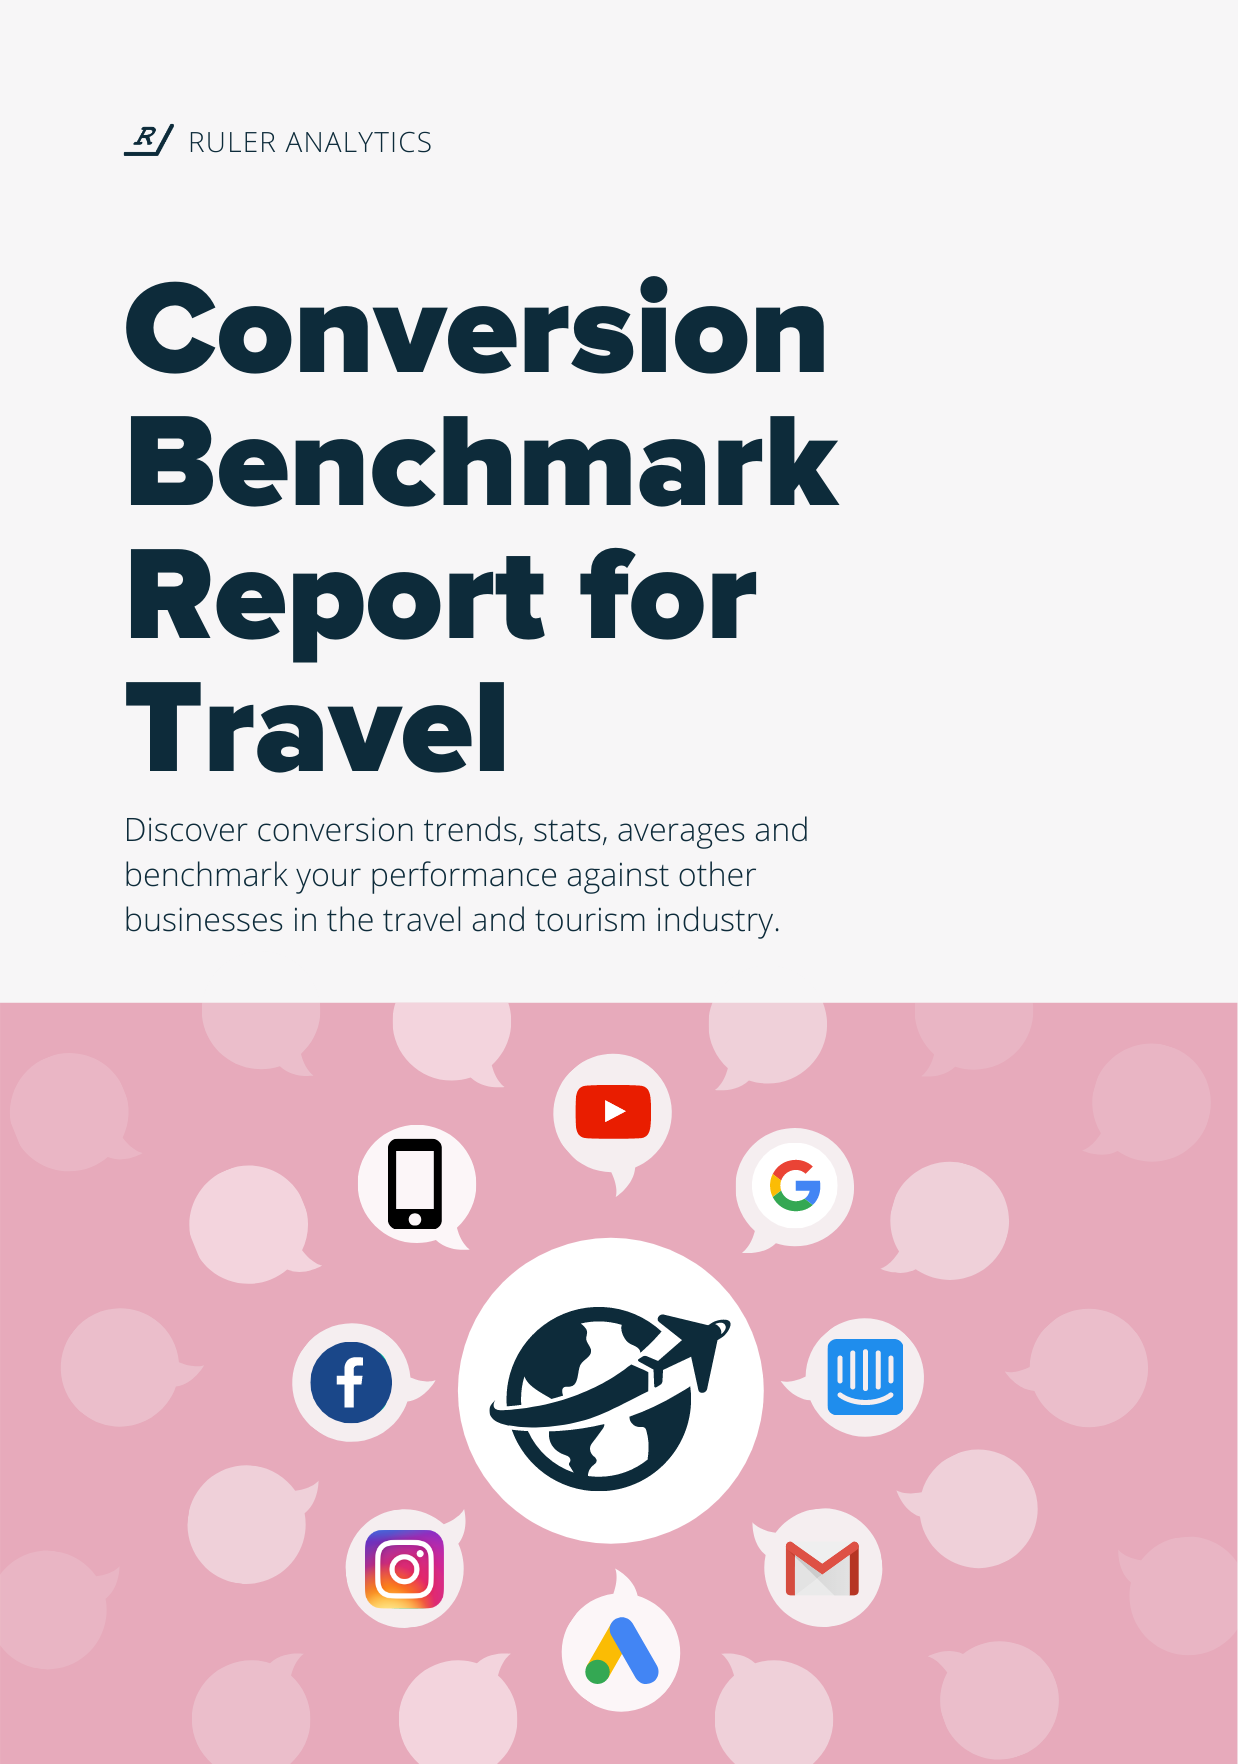 Conversion Benchmark Report for Travel